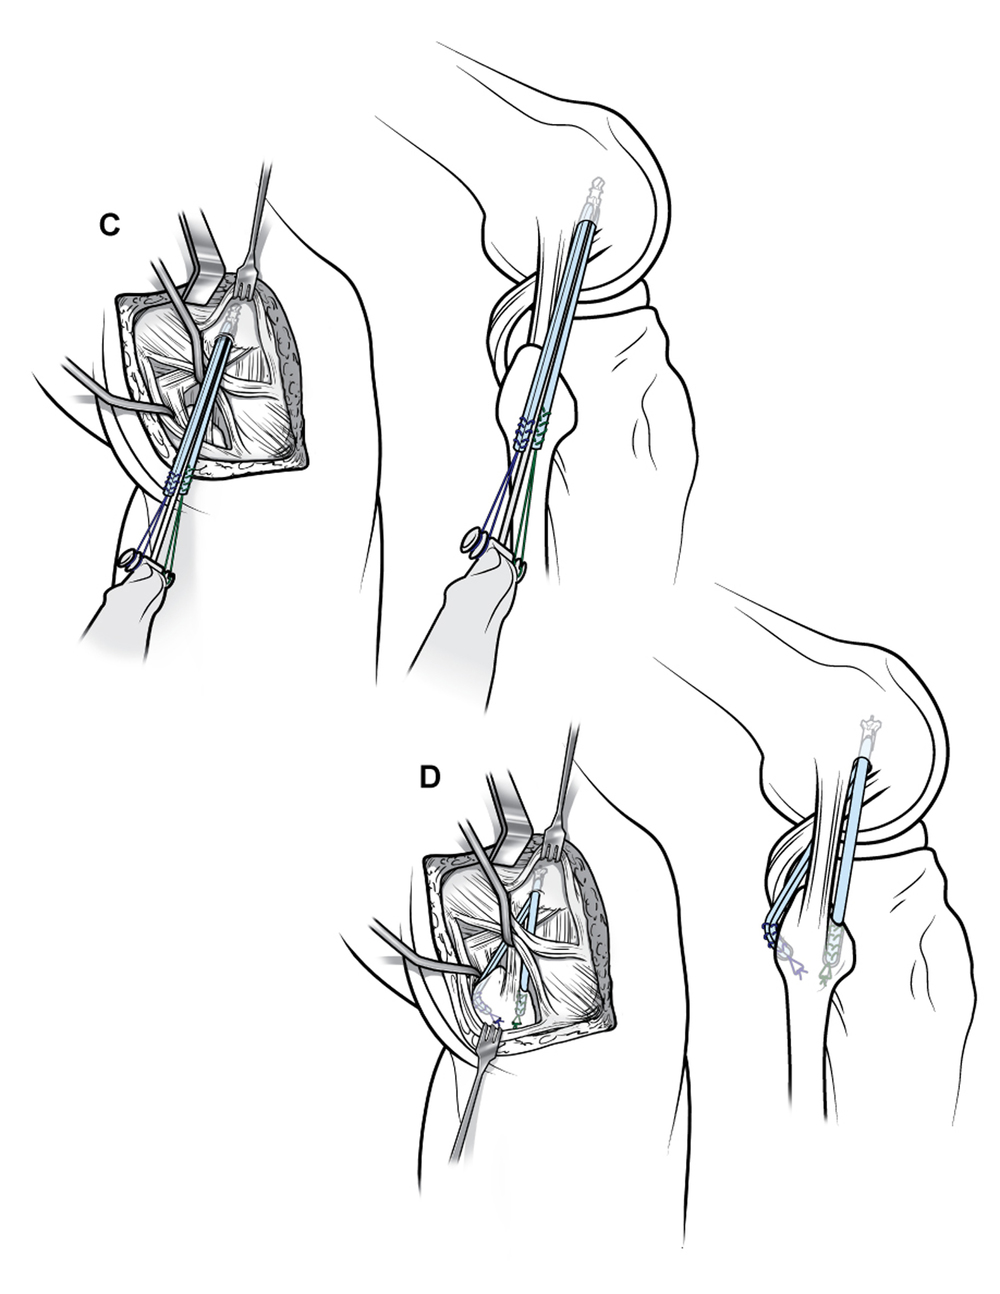 Posterolateral corner reconstruction.